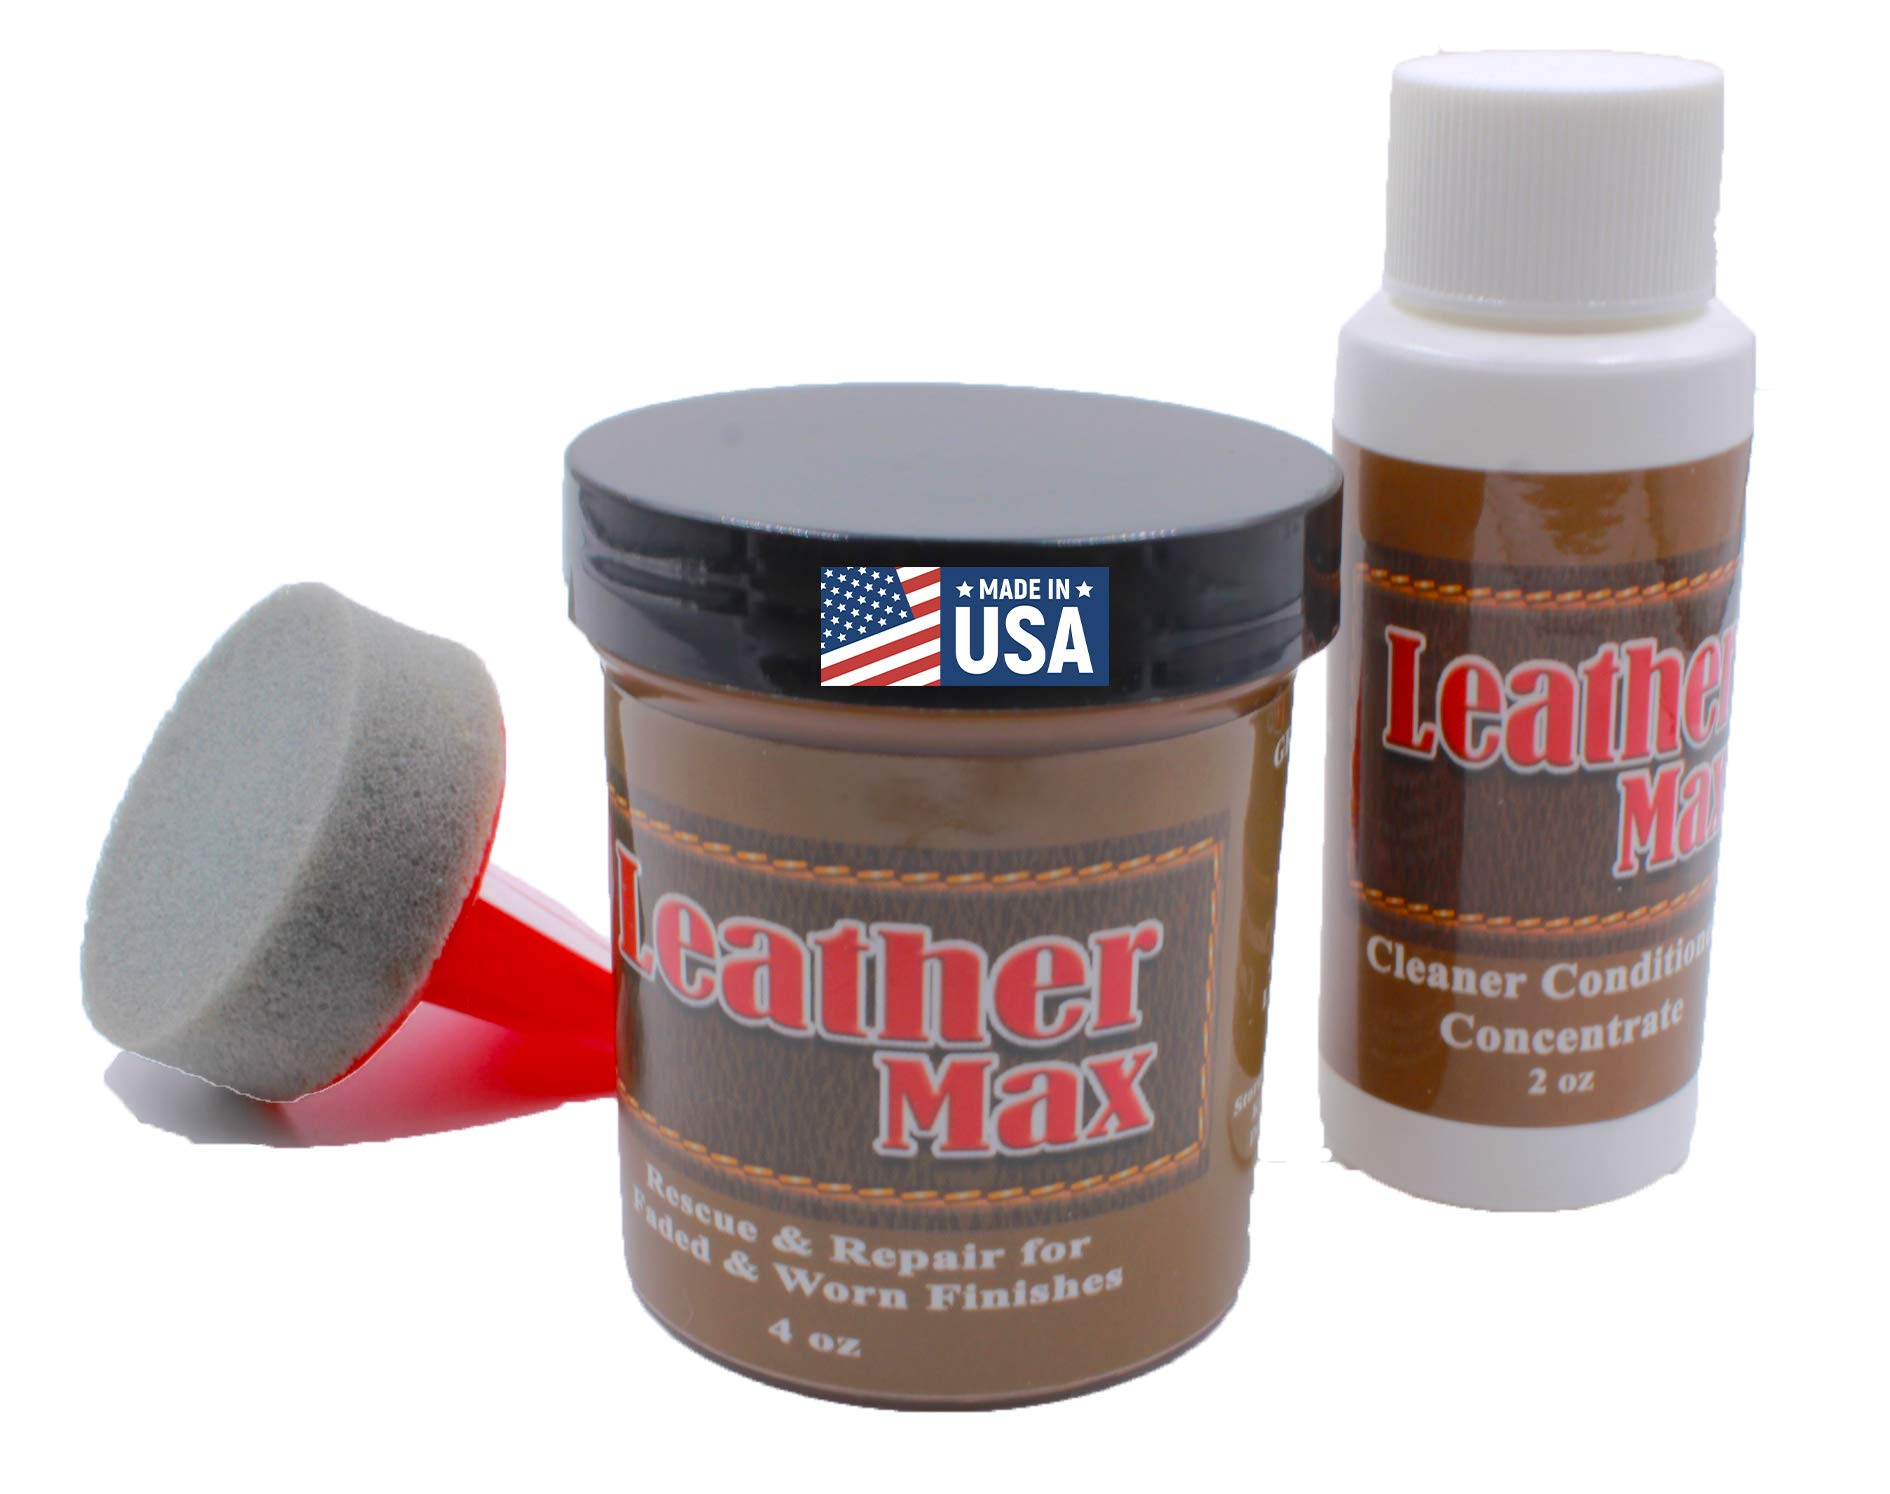 Furniture Leather Max Refinish and Restorer Kit / 4 Oz Restorer / 2 Oz Conditioner / 1 Sponge (Leather Repair) (Vinyl Repair) (Dark Brown) by Leather Furniture Refinish and Repair (Image #1)